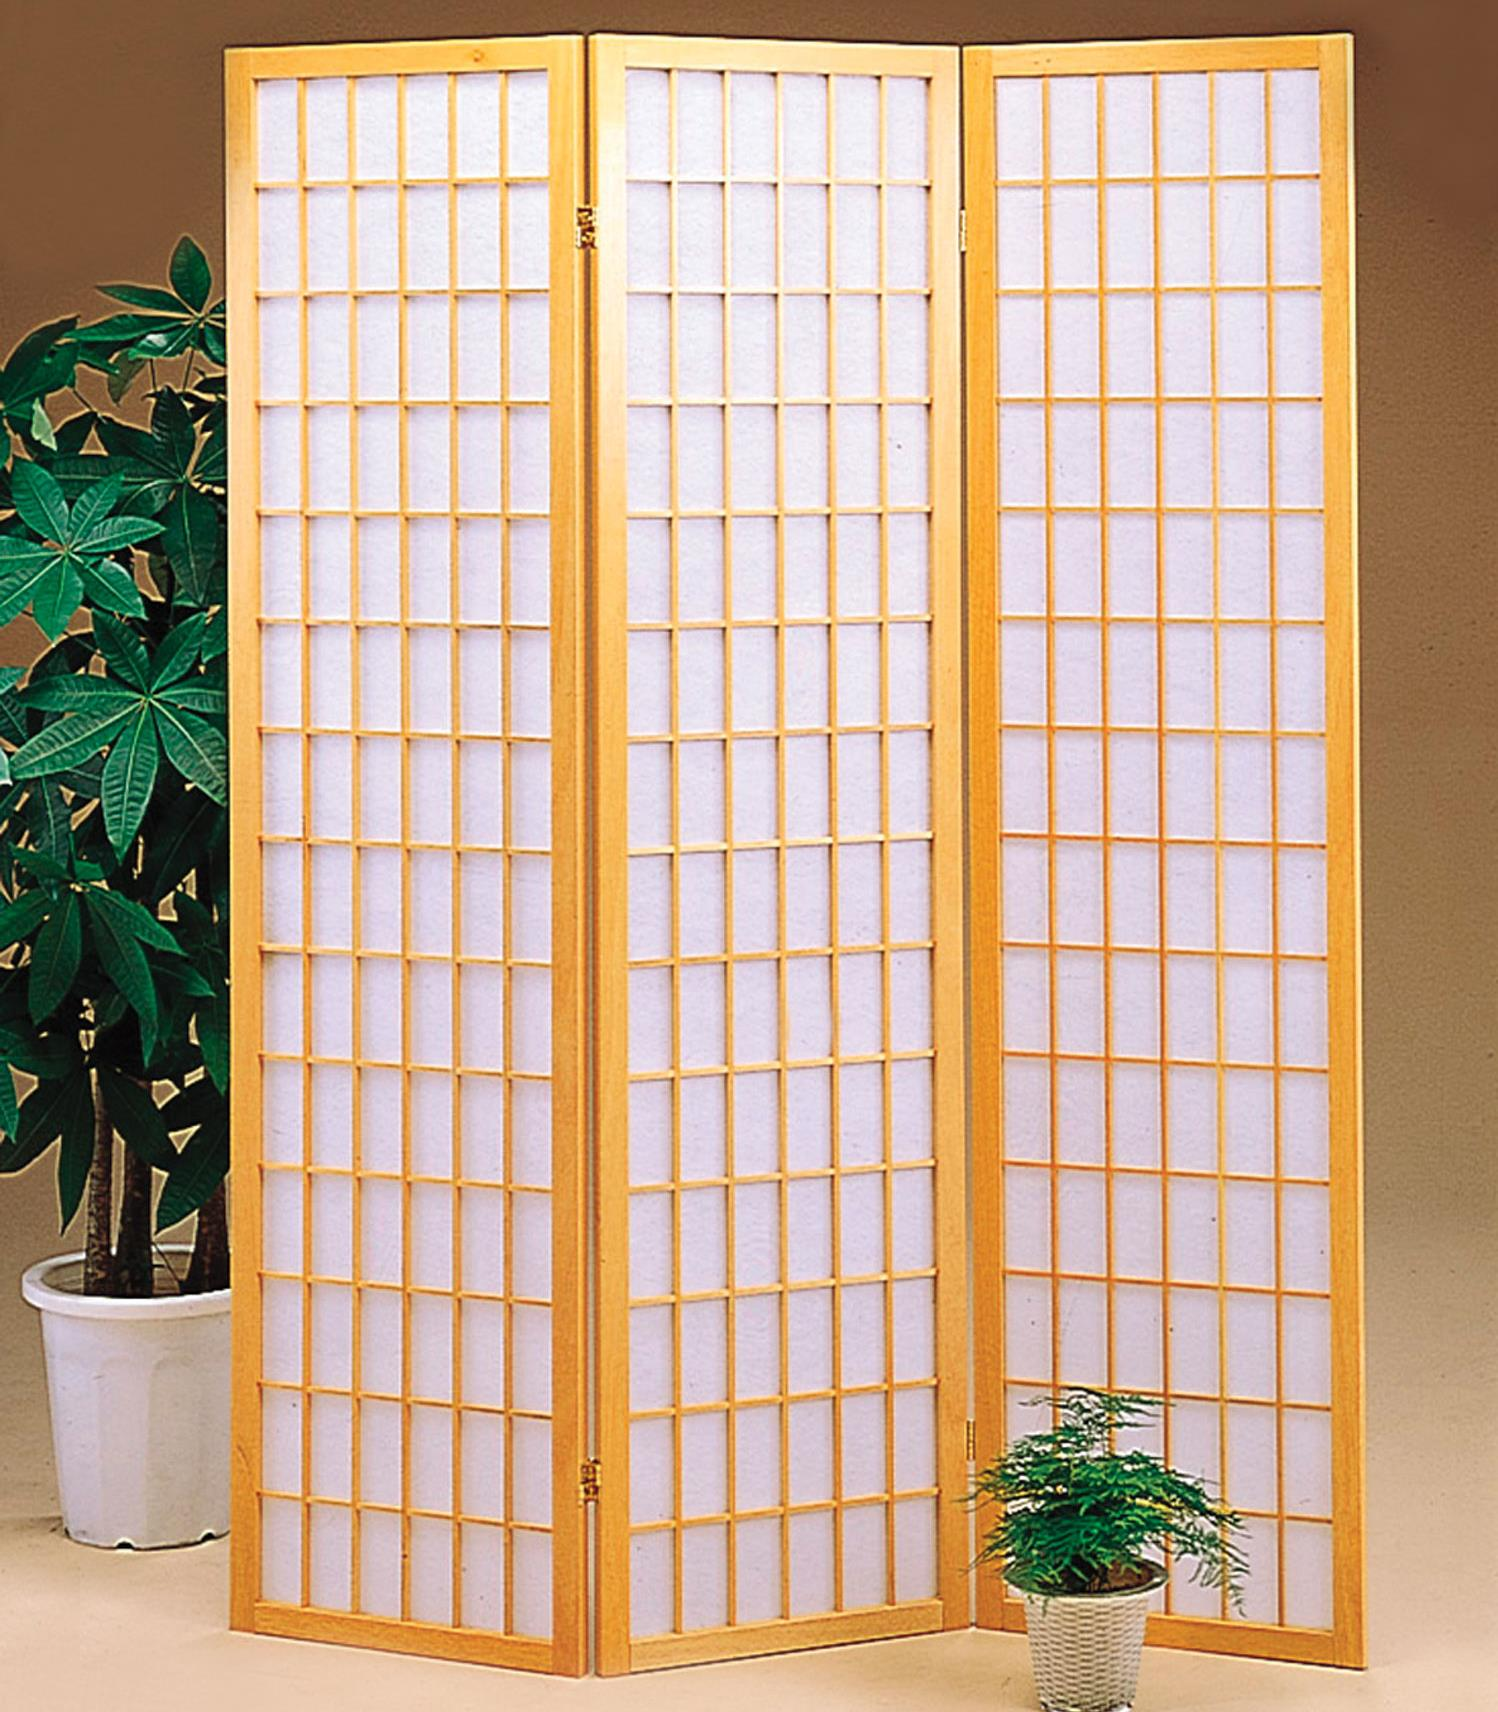 Folding Screens Screen by Coaster at Northeast Factory Direct